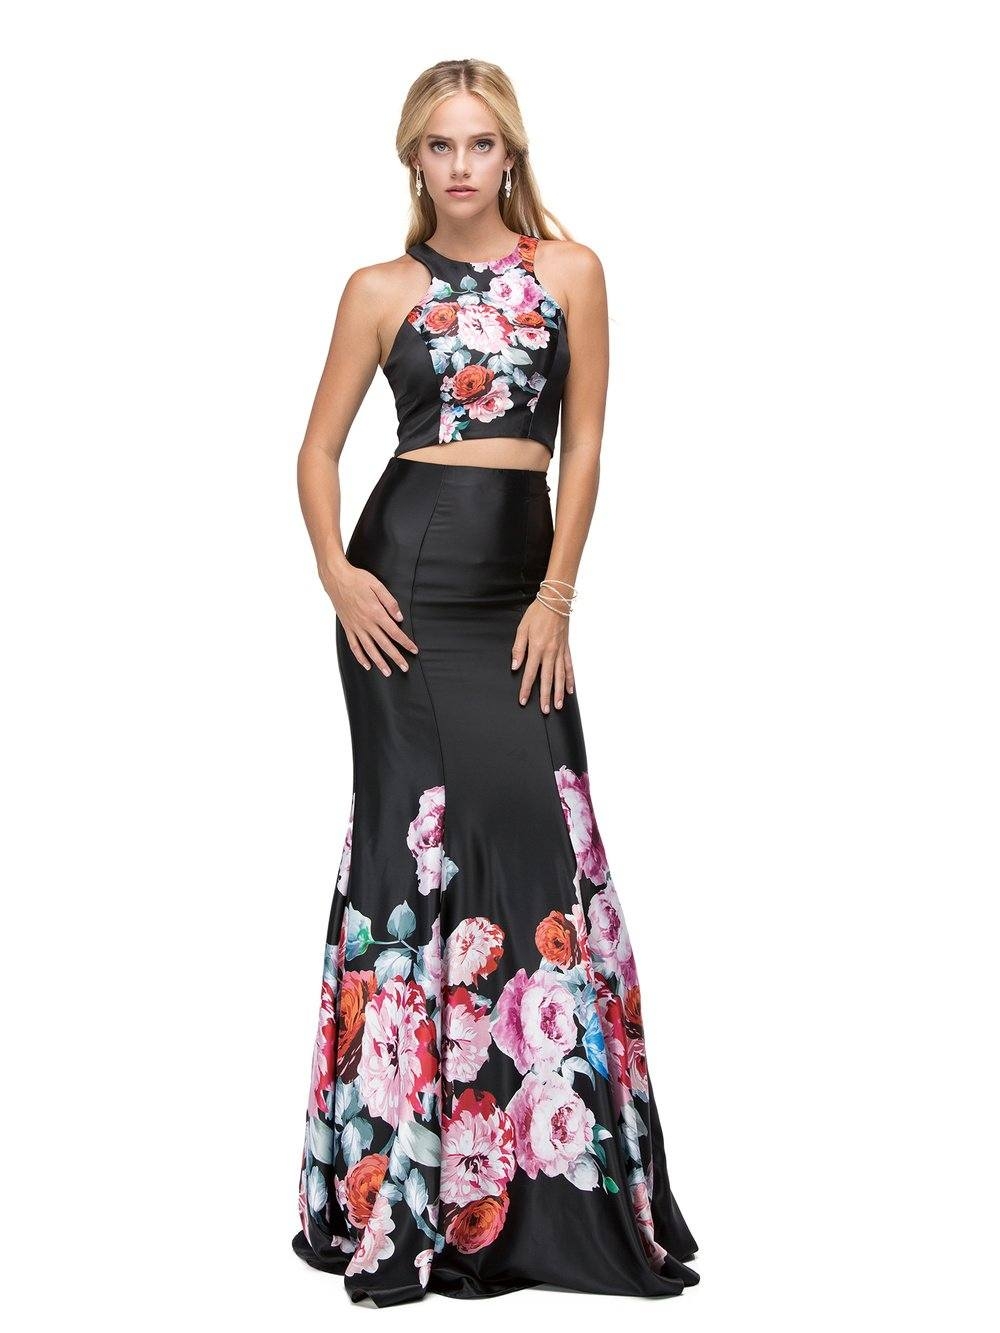 483487d9475 Two-piece Floral Print Prom Dress DQ9904 – Simply Fab Dress